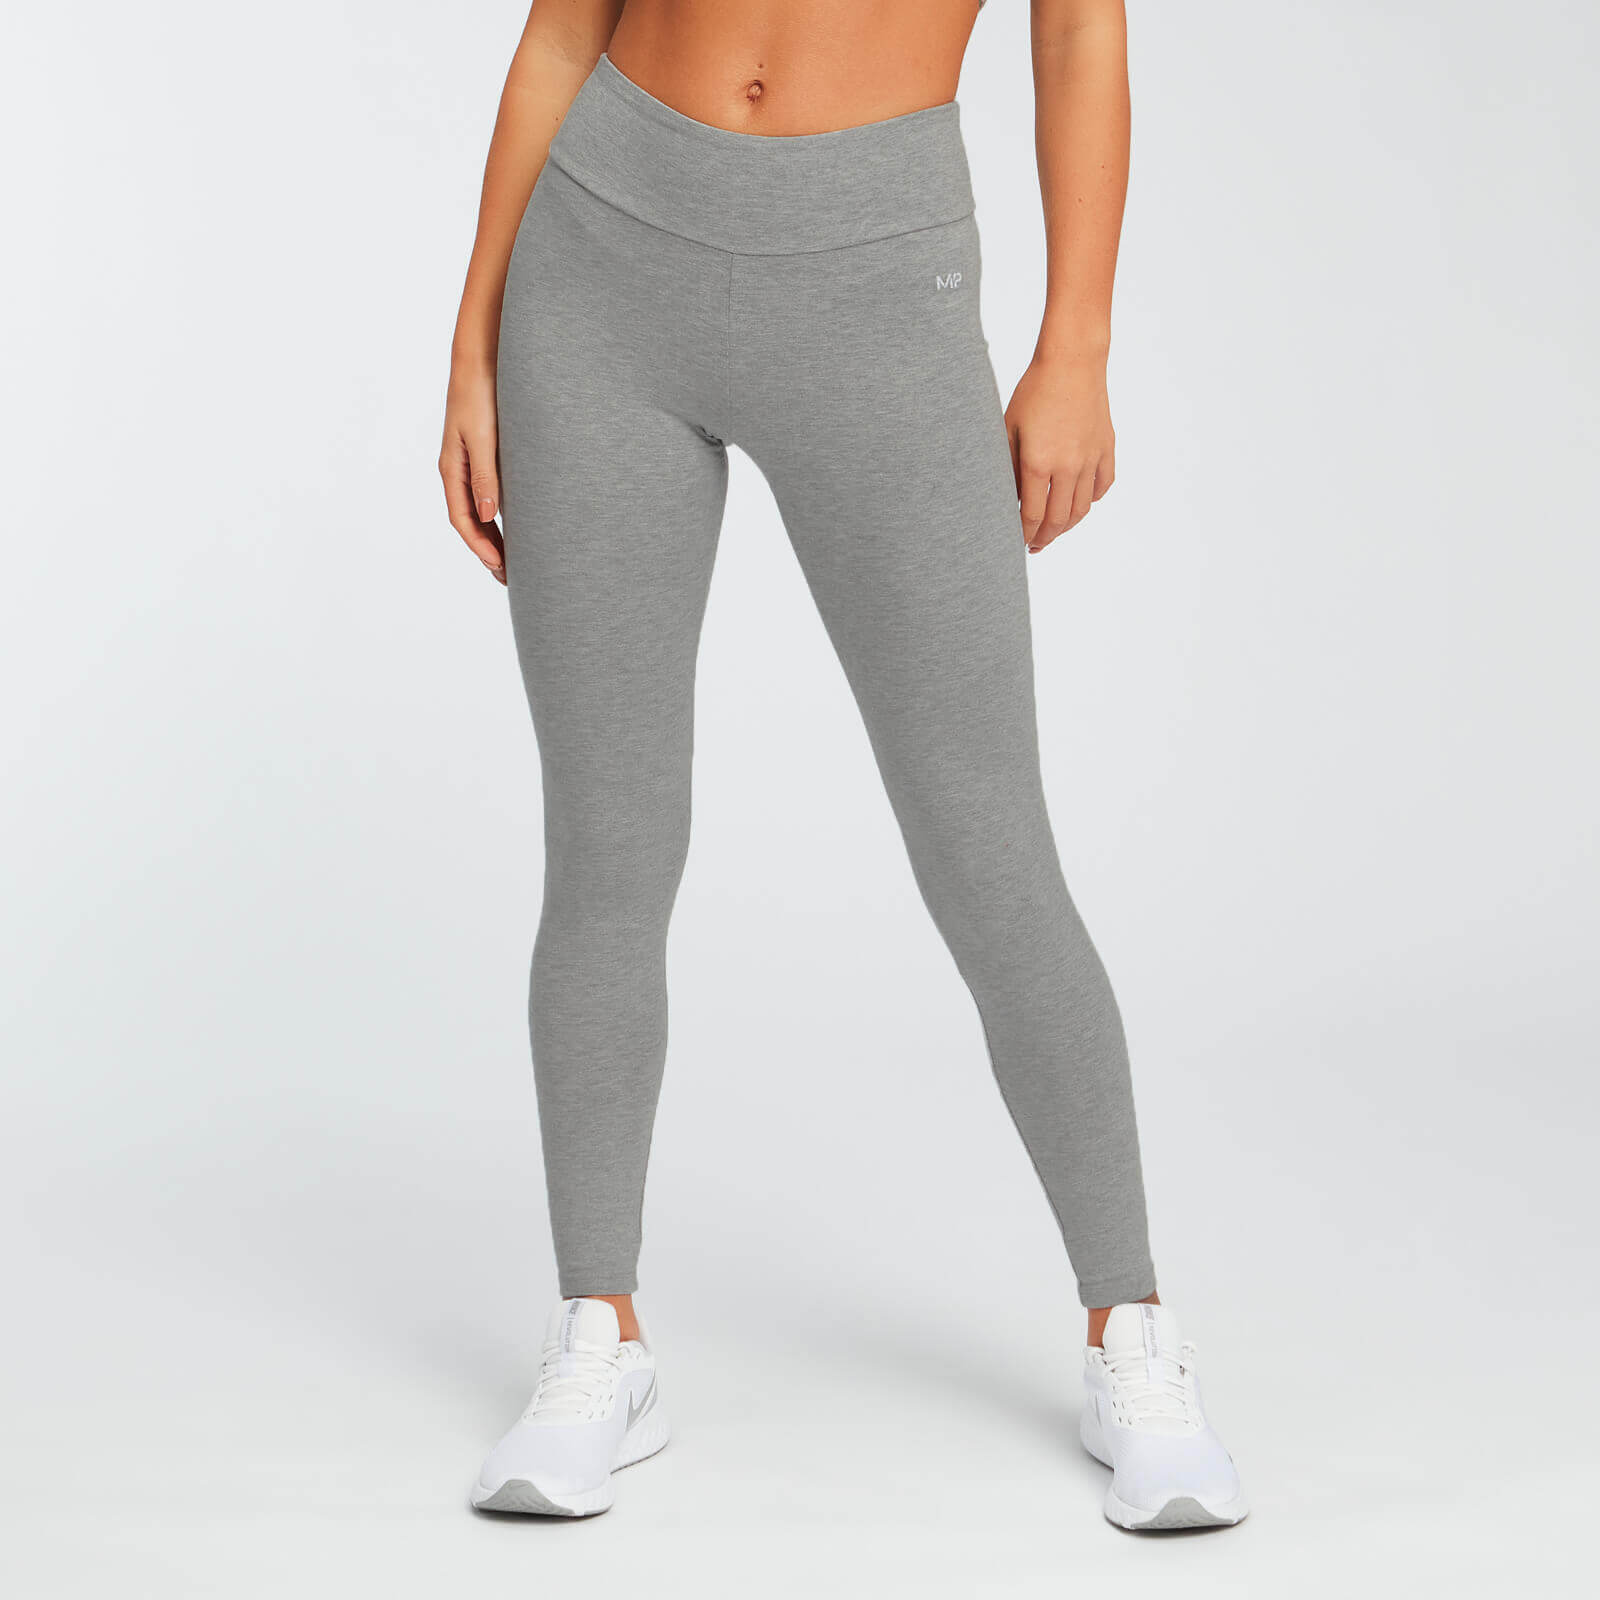 Legging MP Essentials - Gris Chiné - XL